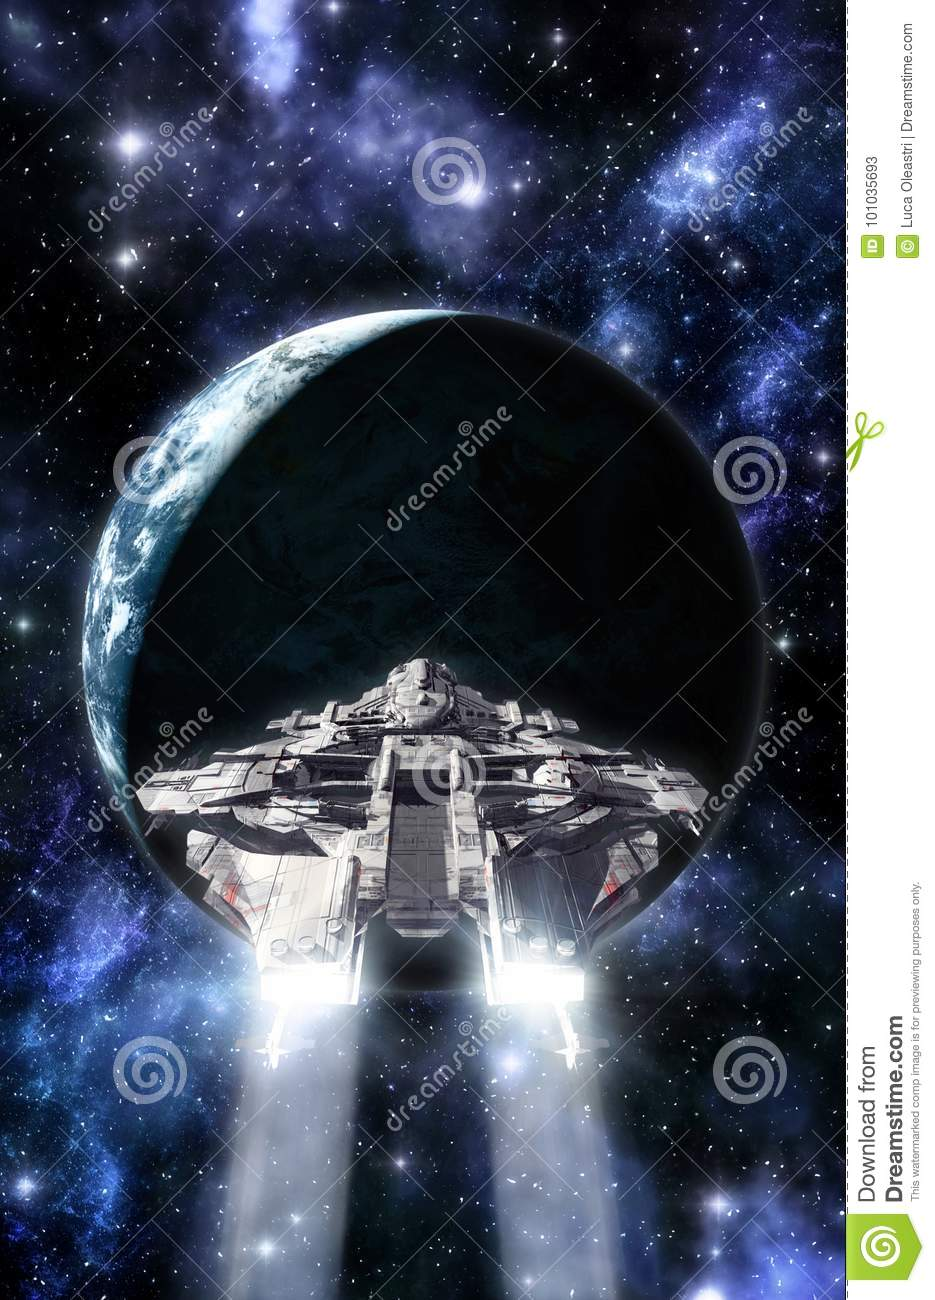 Spaceship and planet